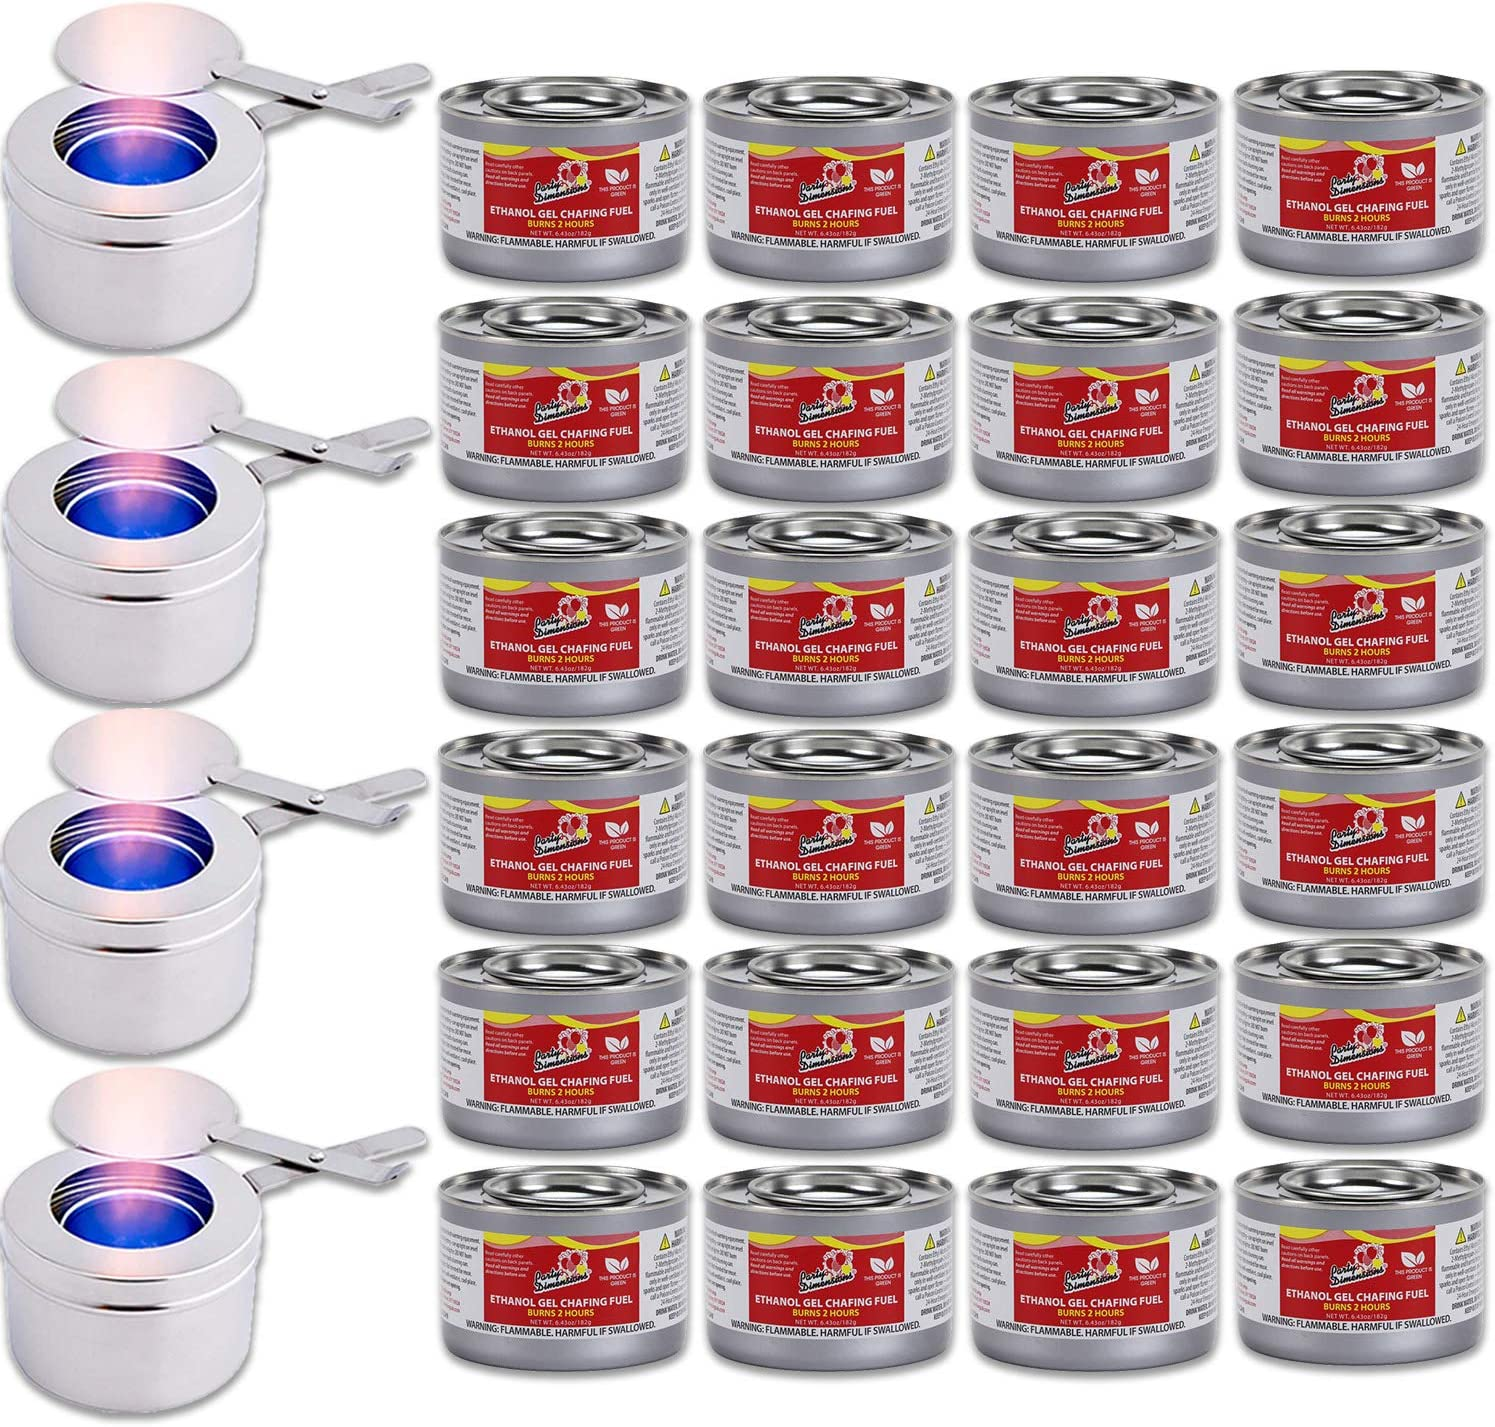 Chafing Dish Fuel Cans and Fuel Holders kit – Includes 24 Ethanol Gel Chafing Fuels, Burns for 2 Hours (6.43 OZ) 4 Fuel Holders with Safety Covers for your Cooking, Food Warming, Buffet and Parties.